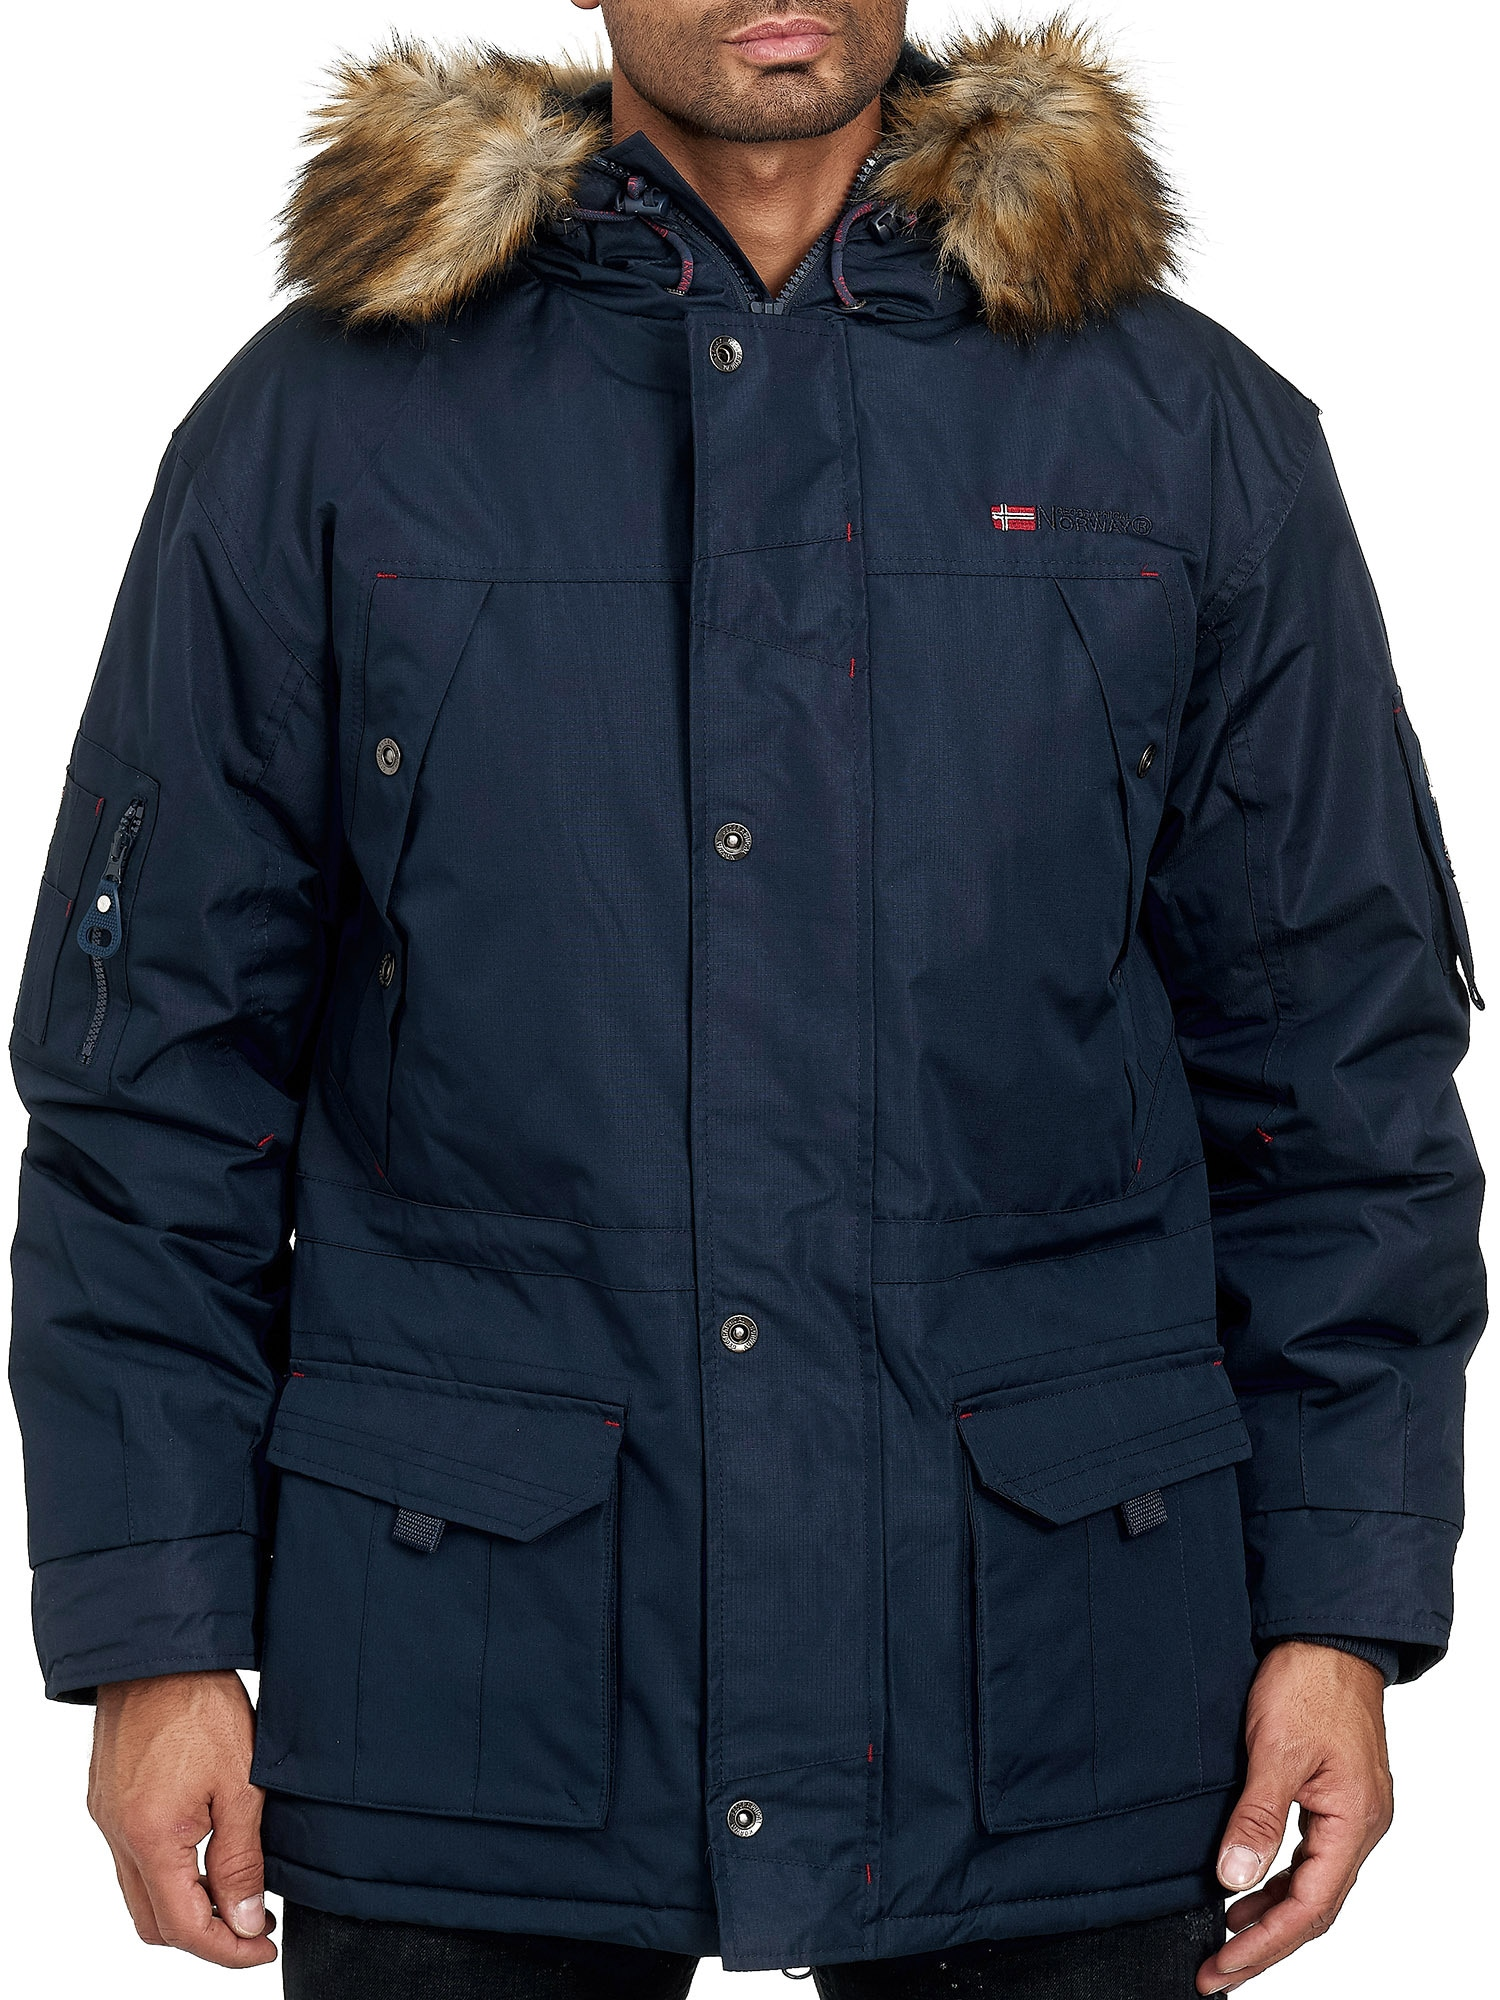 Geographical Norway Steppmantel | Bekleidung > Mäntel > Sonstige Mäntel | Blau | geographical norway